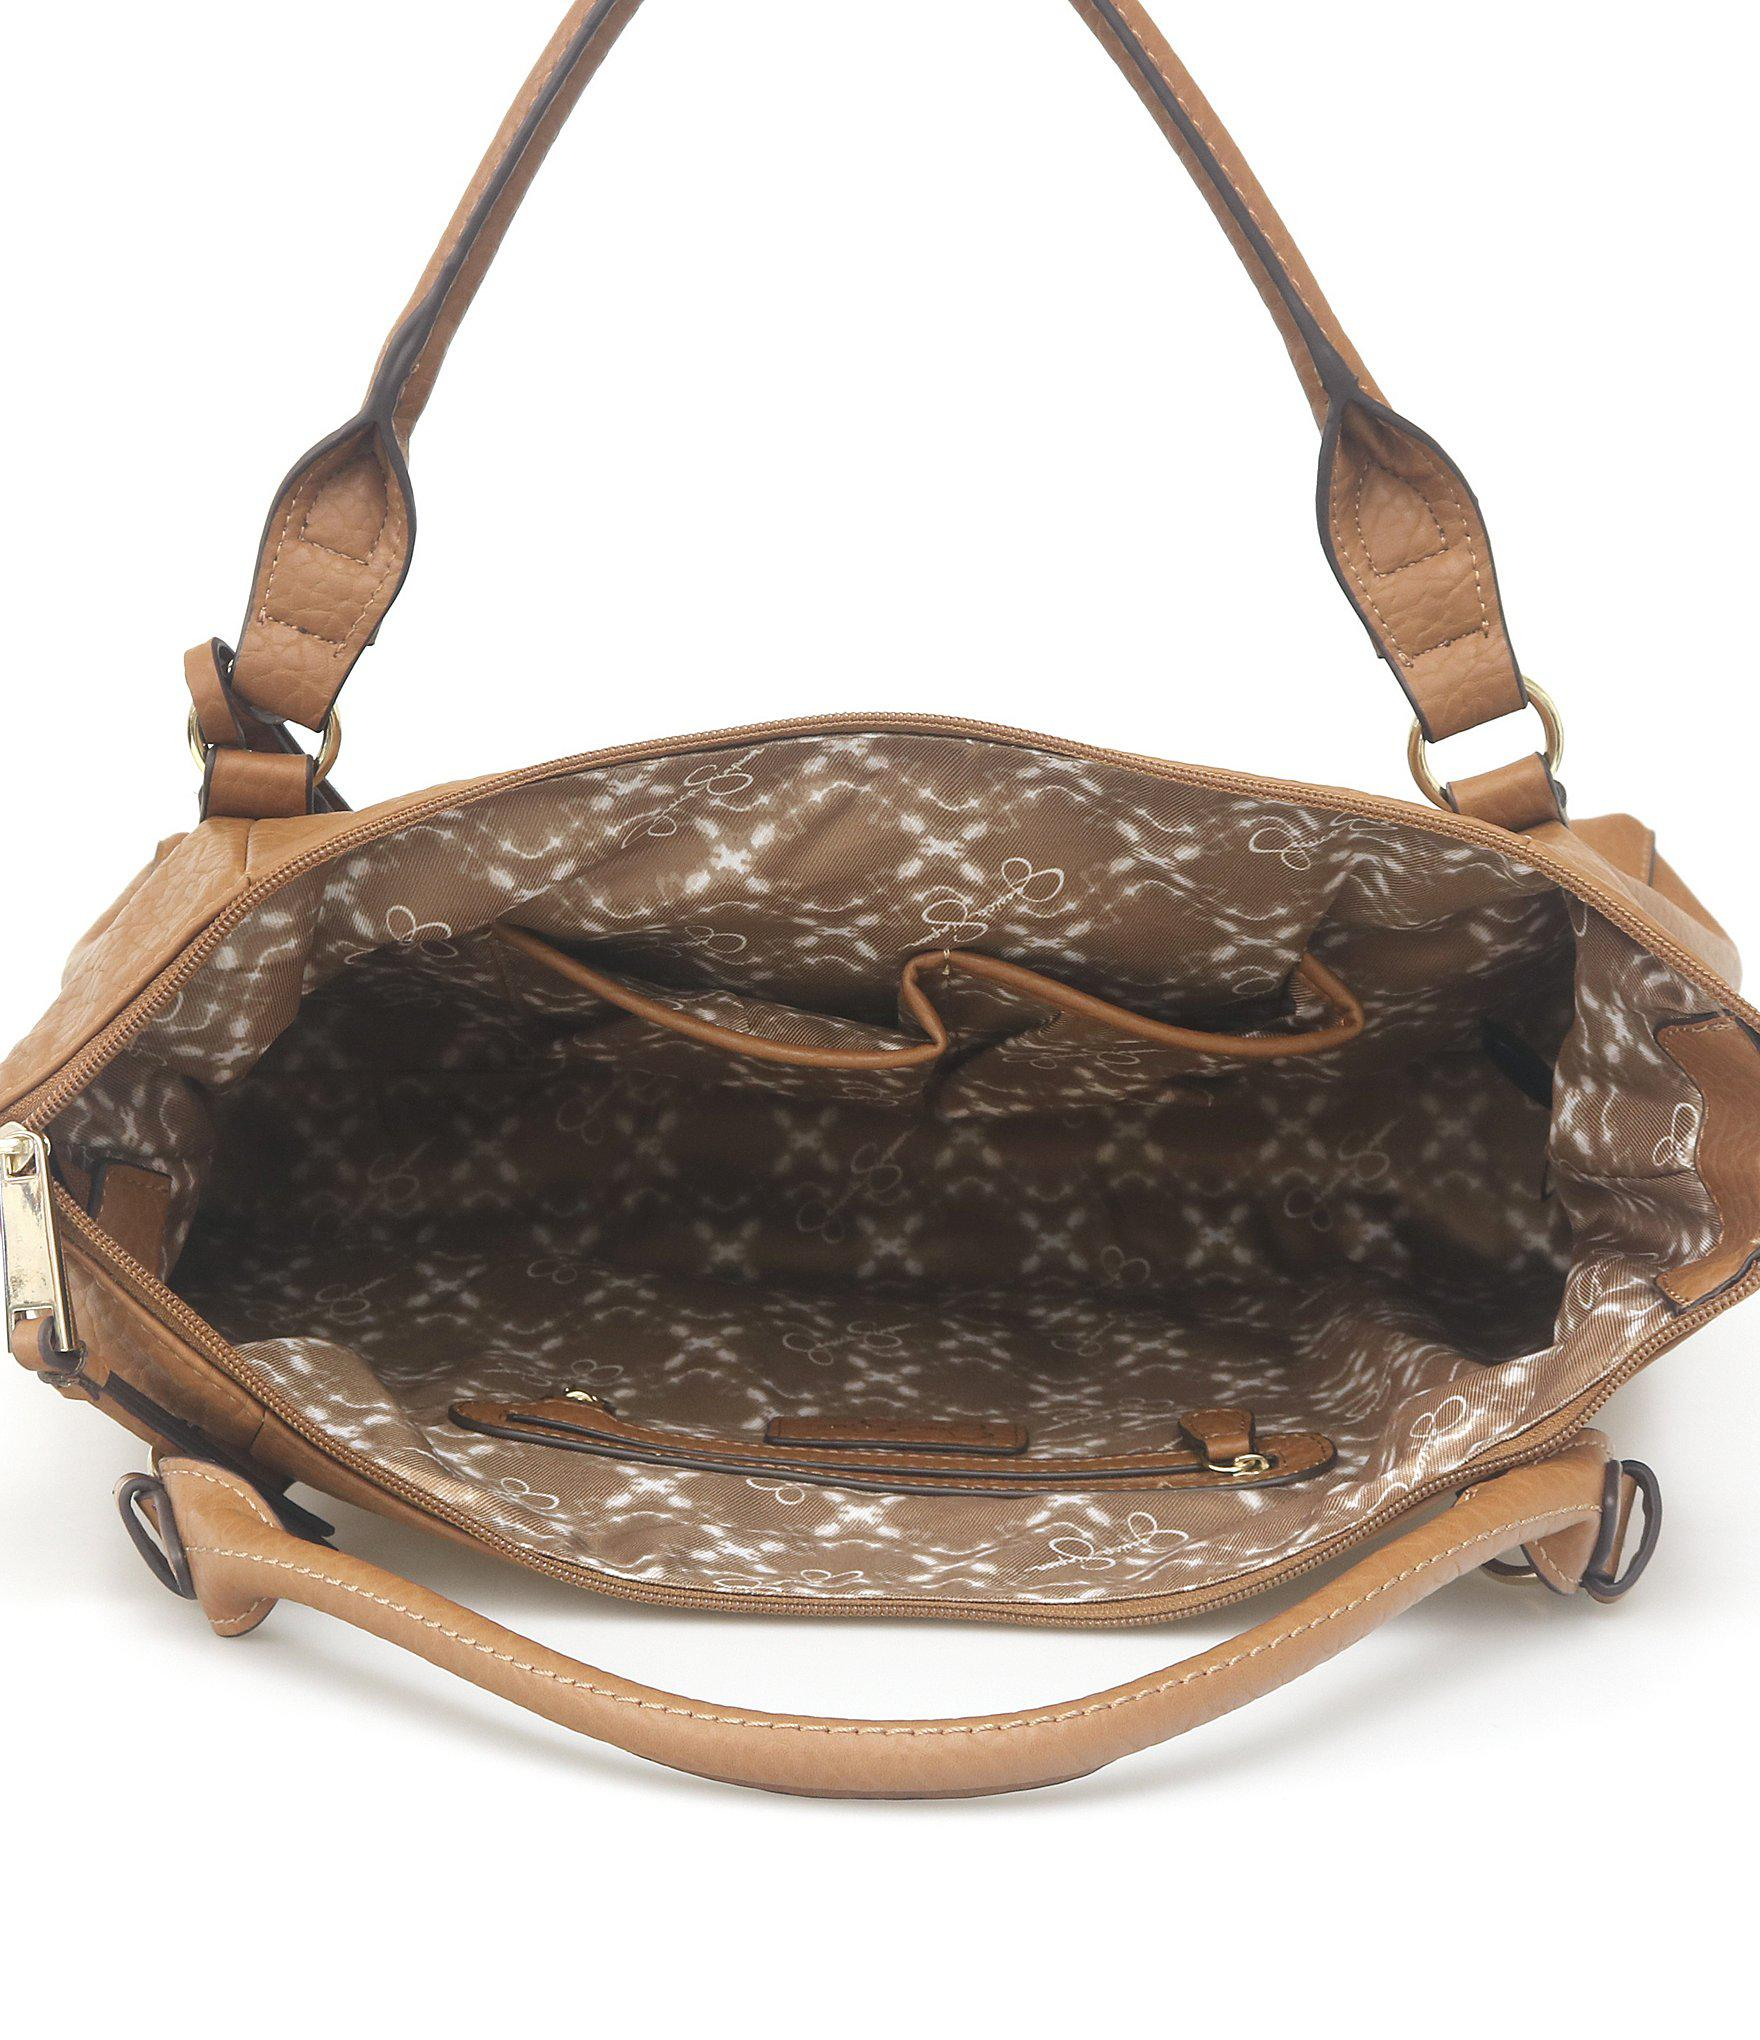 58655ae8905 Jessica Simpson Brown Everly Top Zip Tote